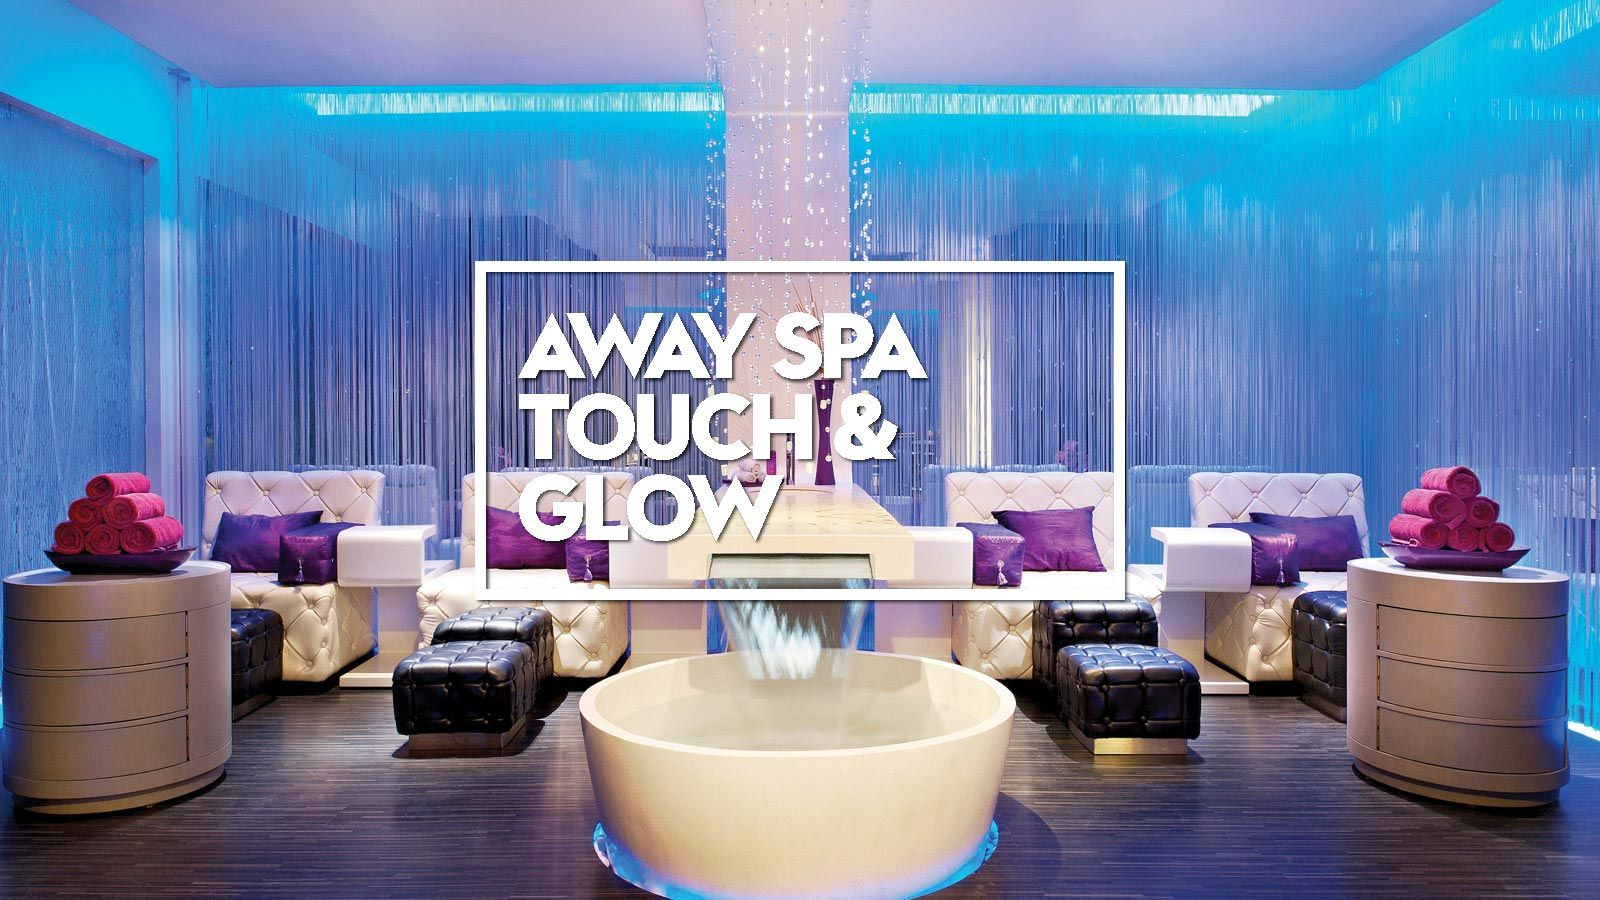 AWAY SPA TOUCHGLOW